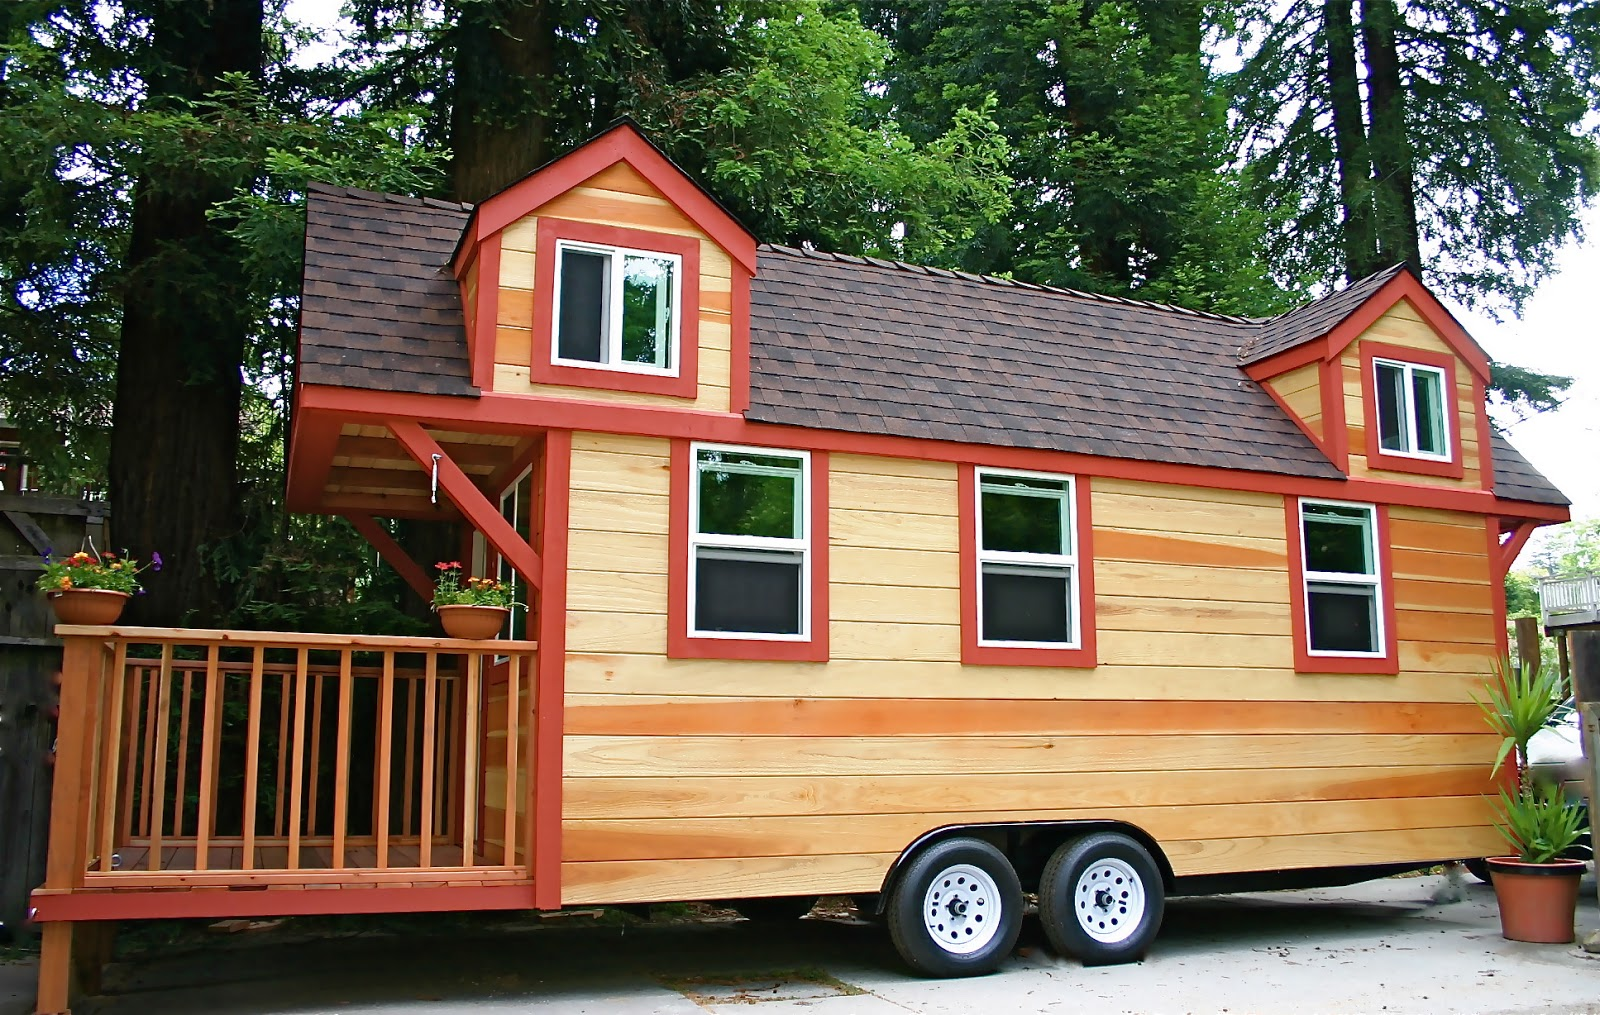 Tiny houses on trailers for sale - Latest Small Houses Off The Grid The Tiny Life